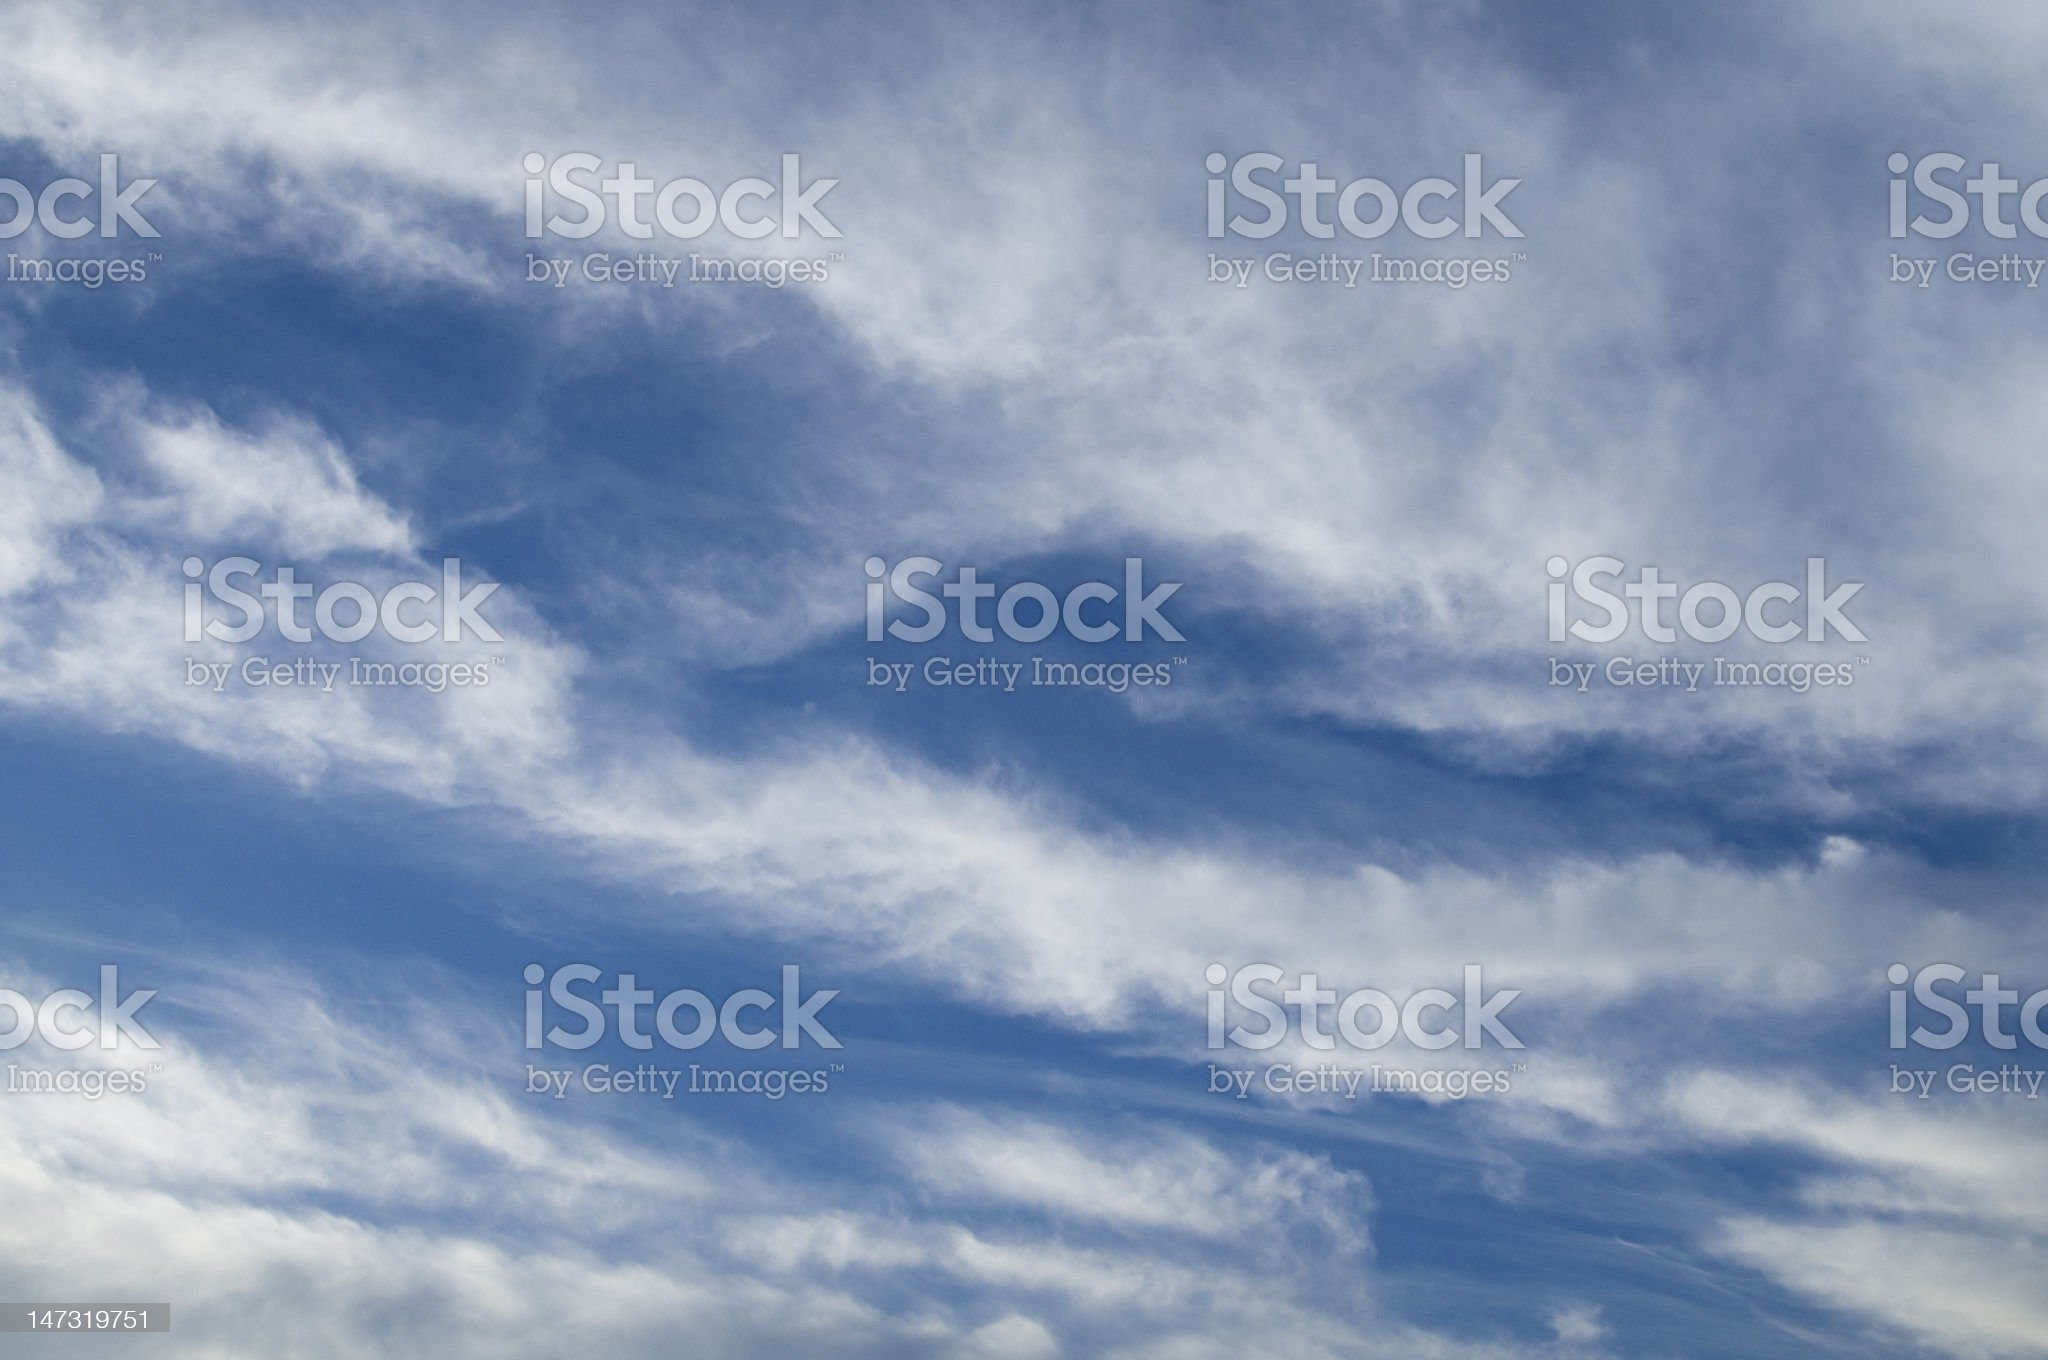 Patterns in the sky royalty-free stock photo